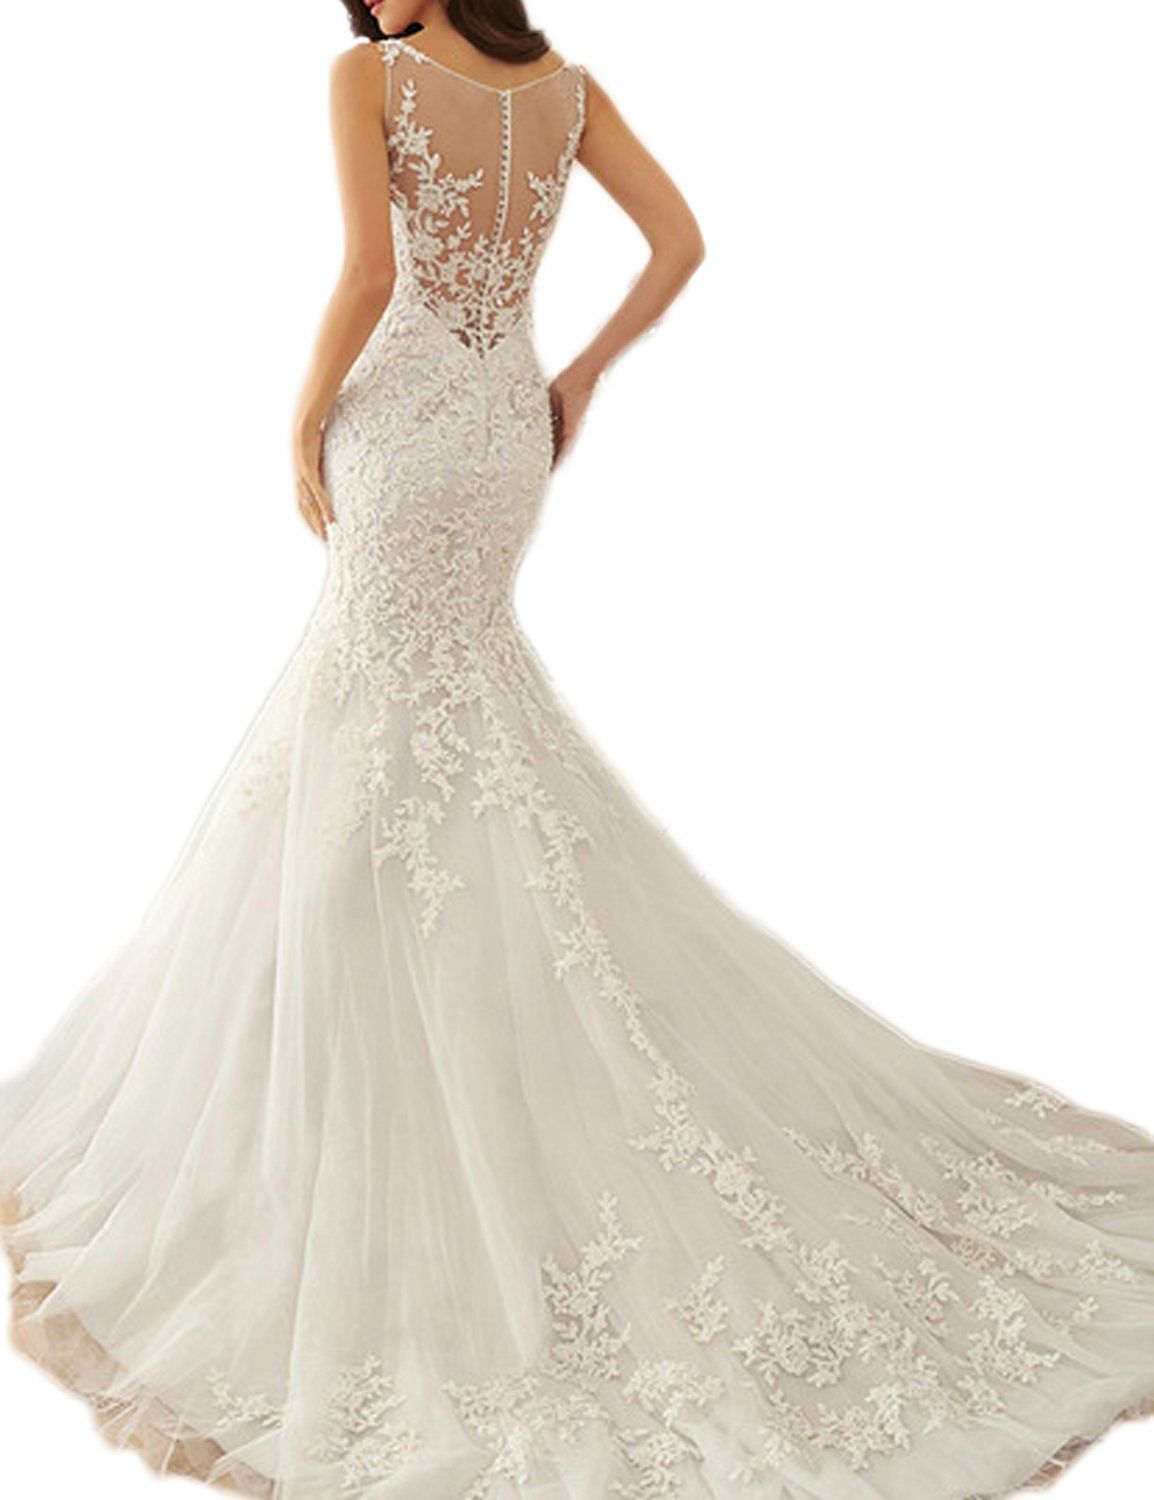 SeasonMall Womens Wedding Dresses Scoop Mermaid Court Train With Applique At Amazon Clothing Store